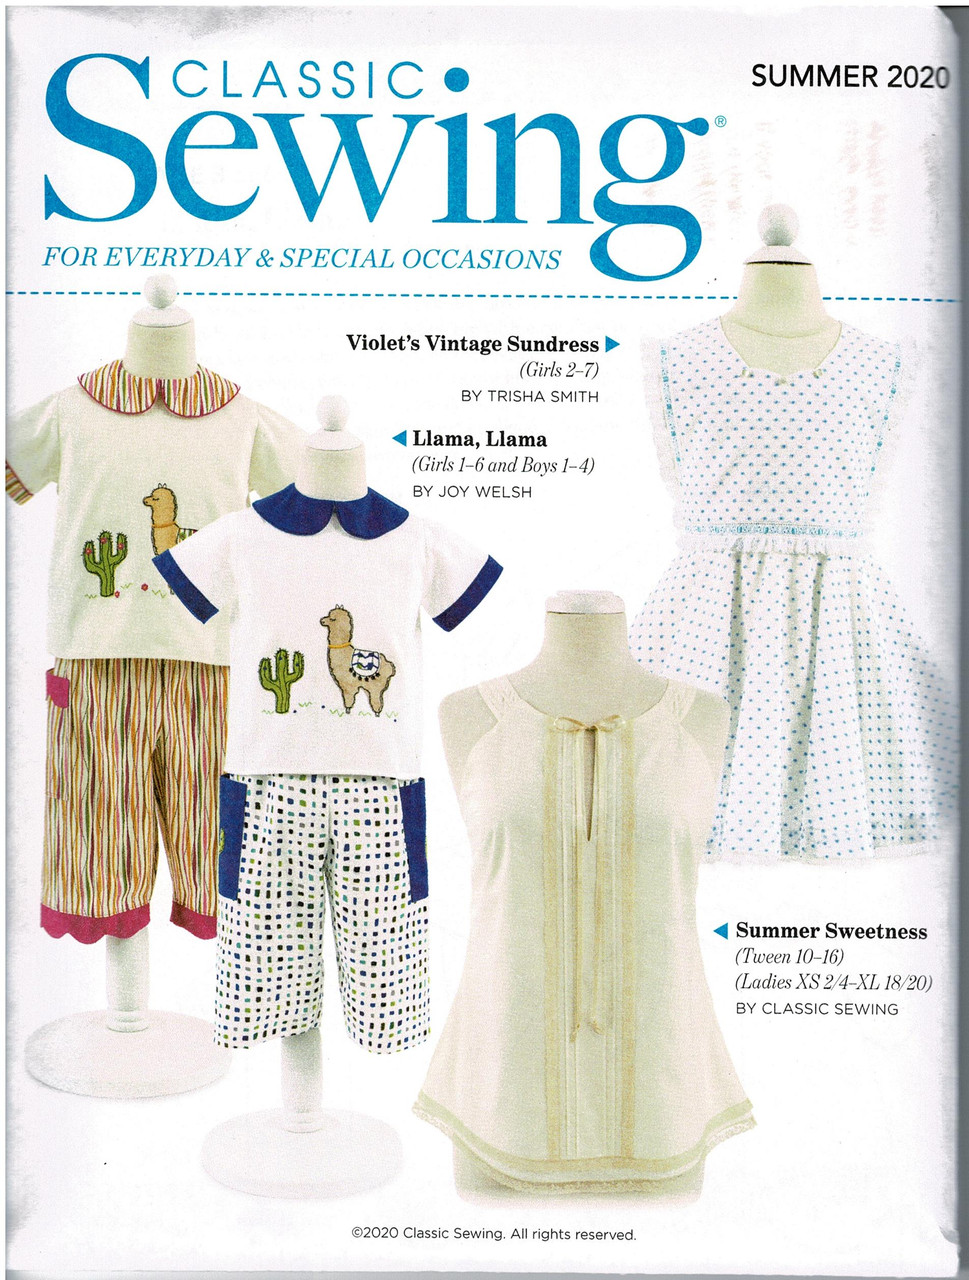 Classic Sewing magazine Summer 2020 - sewing pattern included